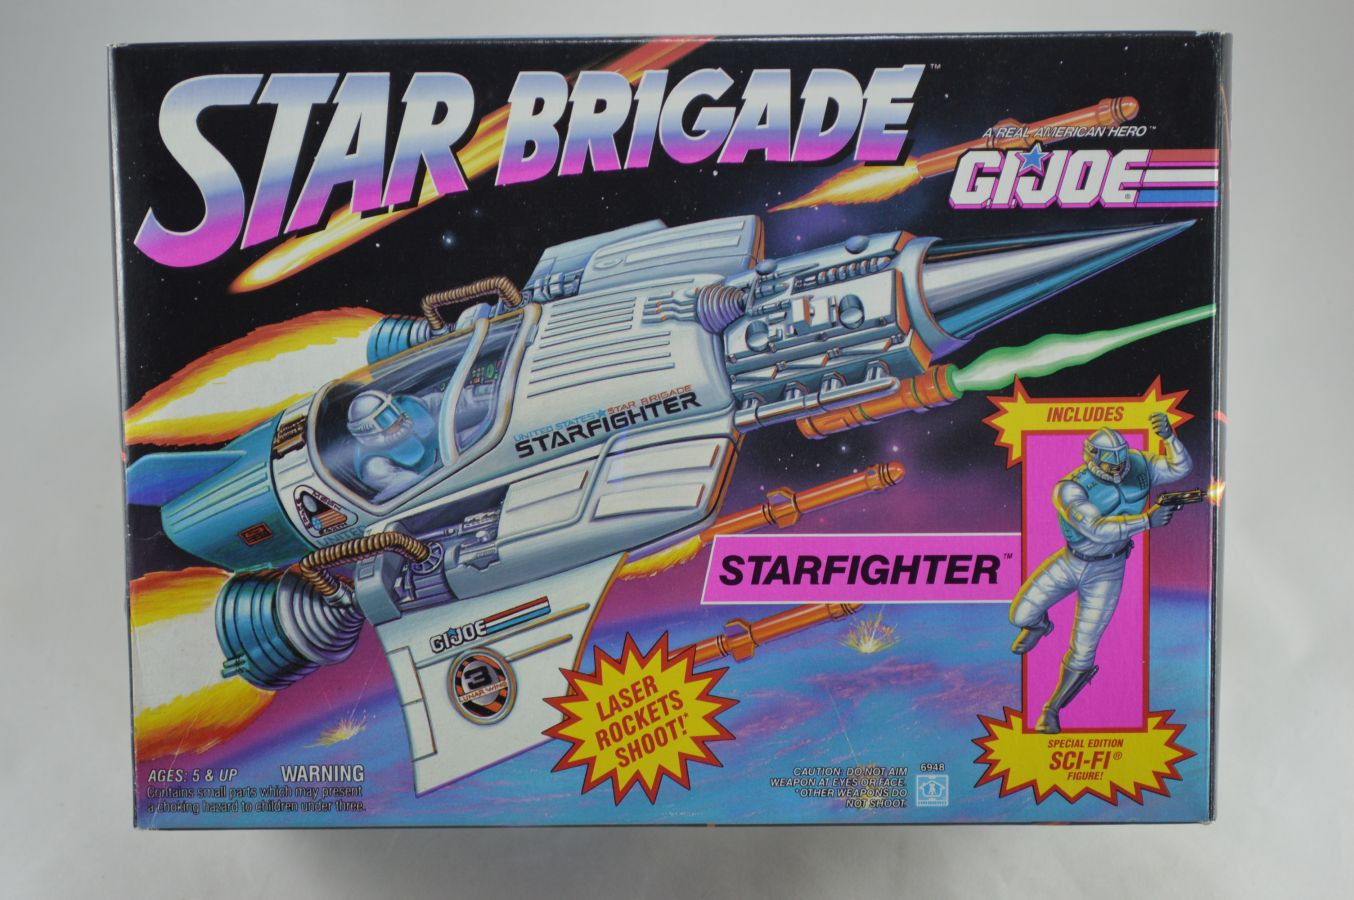 GI Joe Star Brigade Starfighter Vehicle MIB Vintage